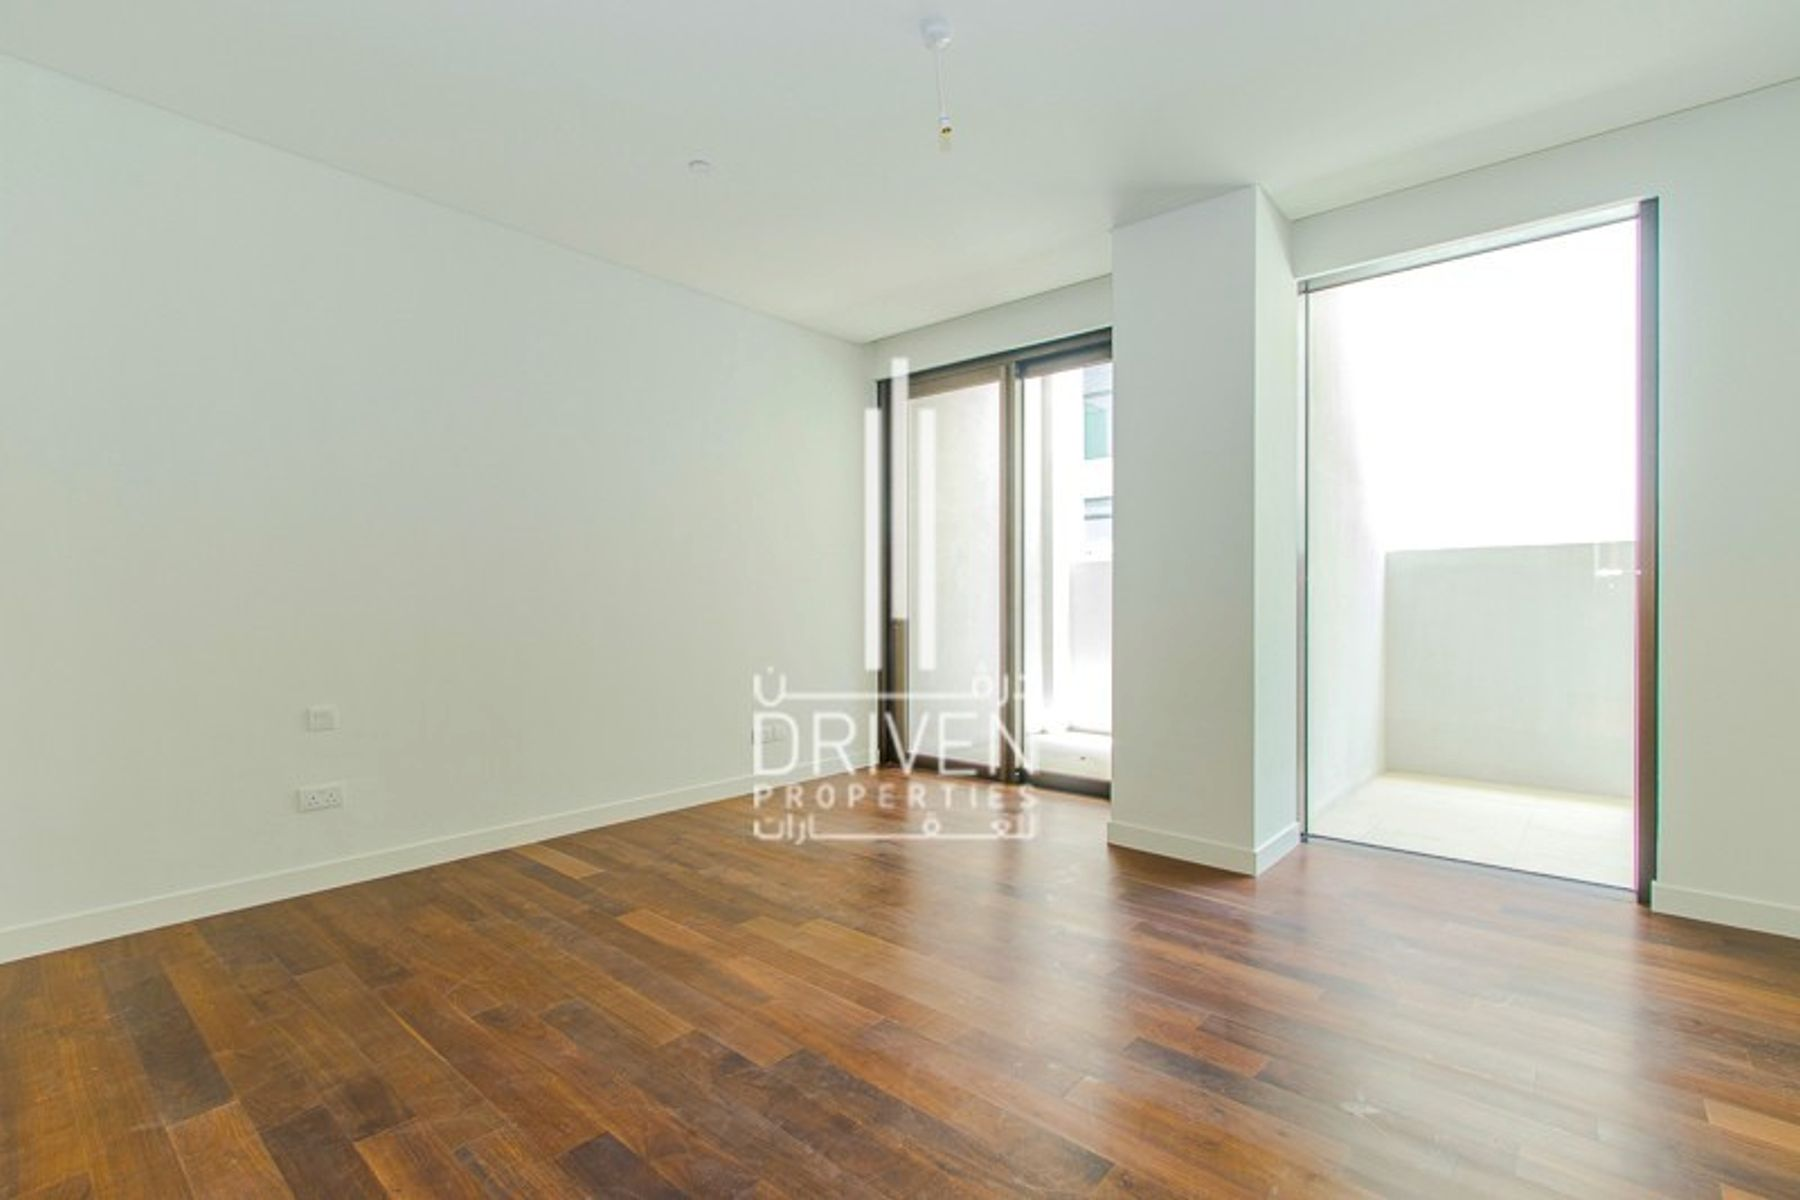 Apartment for Sale in Building 10 - City Walk